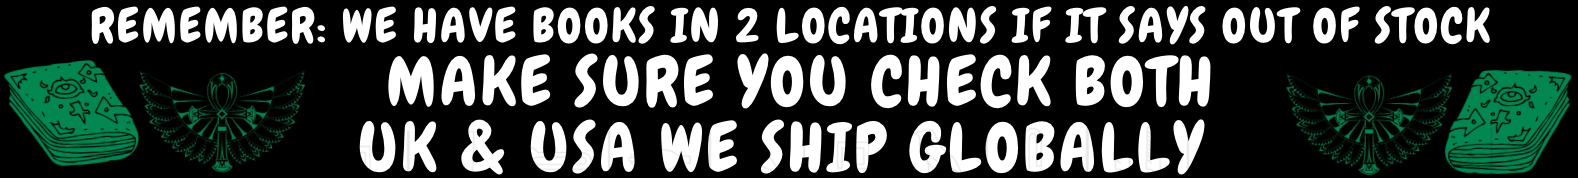 IndigiBookz.com | We Ship From Two Locations